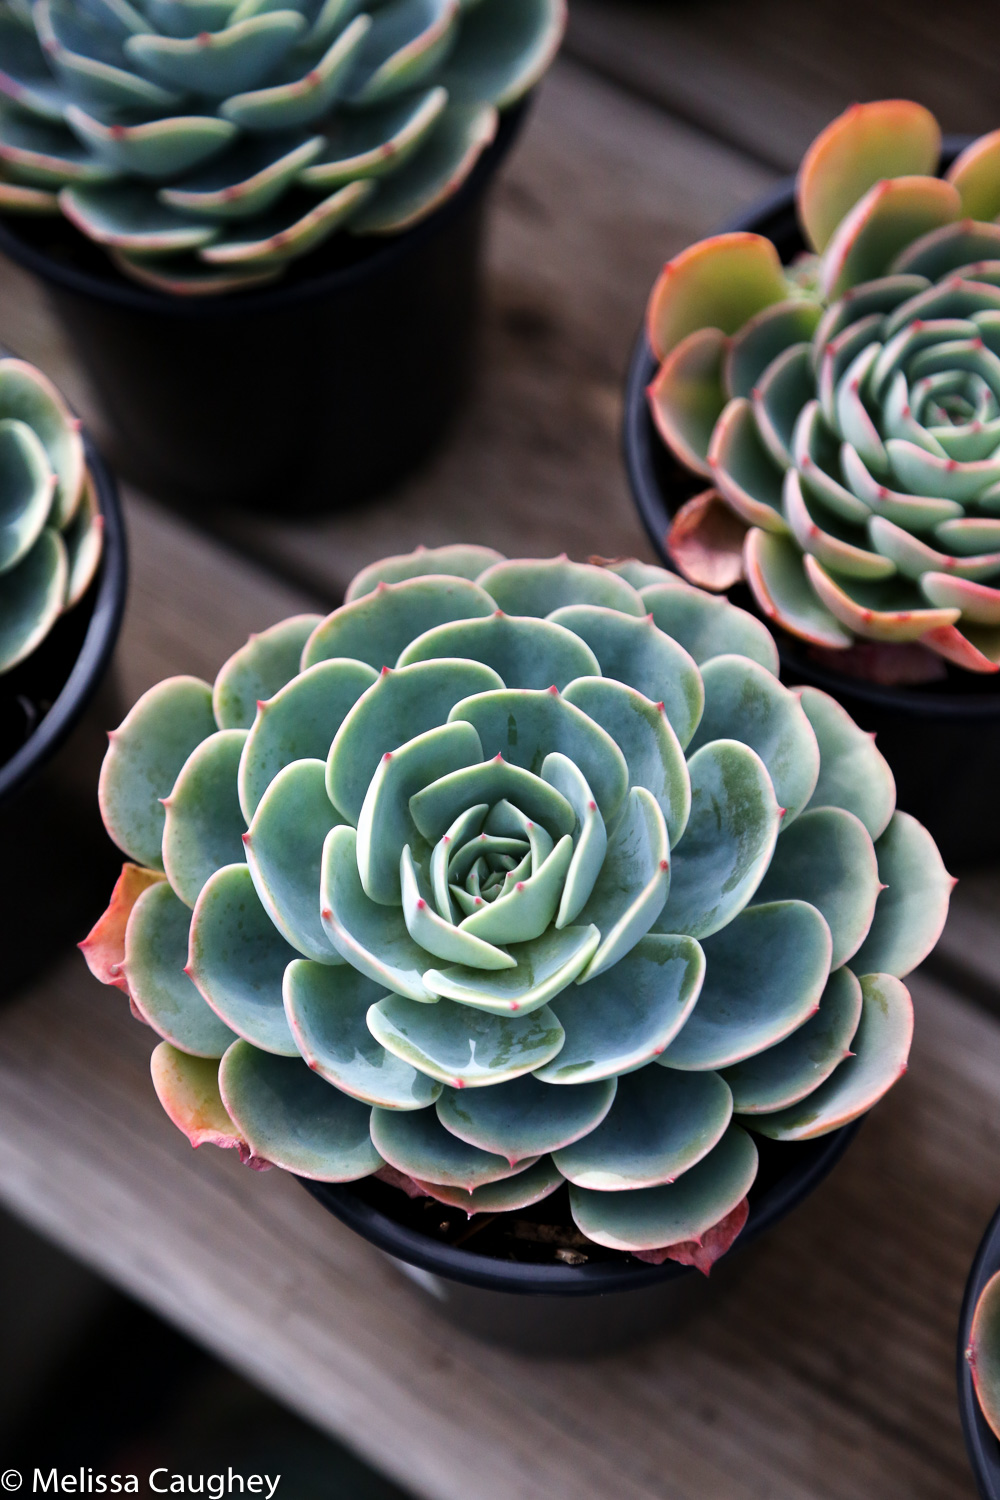 Original_Caughey-Melissa-succulent1 plants speak